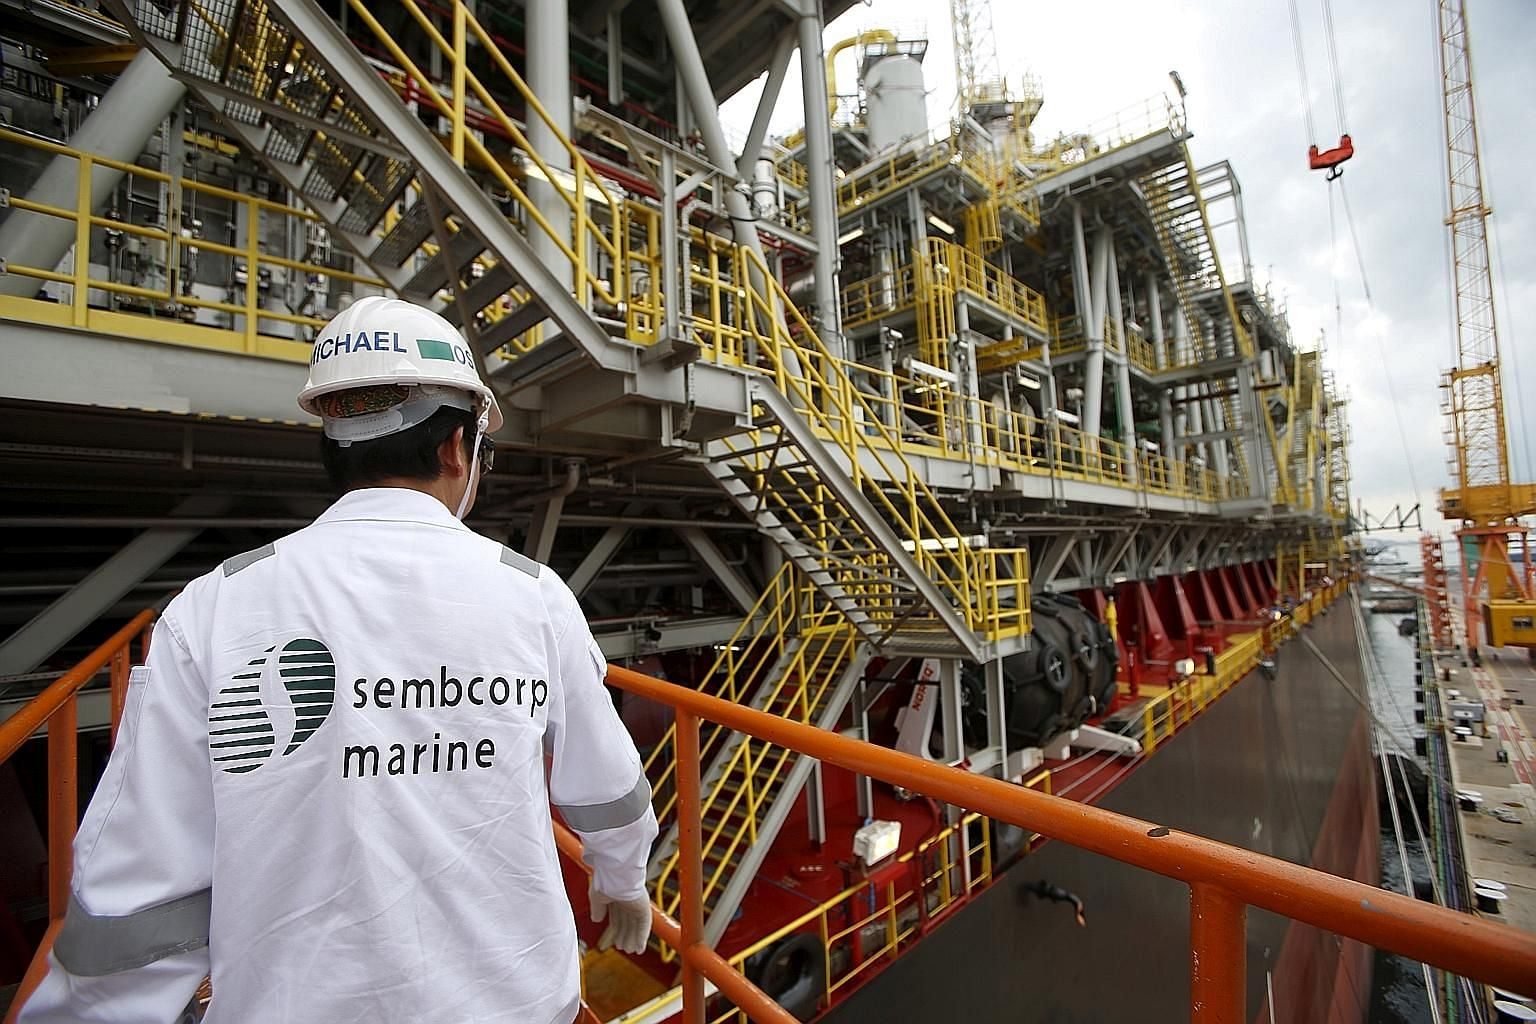 A floating production, storage and offloading vessel in Jurong Shipyard. Sembcorp Marine noted that oil prices are more stable, and global exploration and production spending is expected to rise this year.